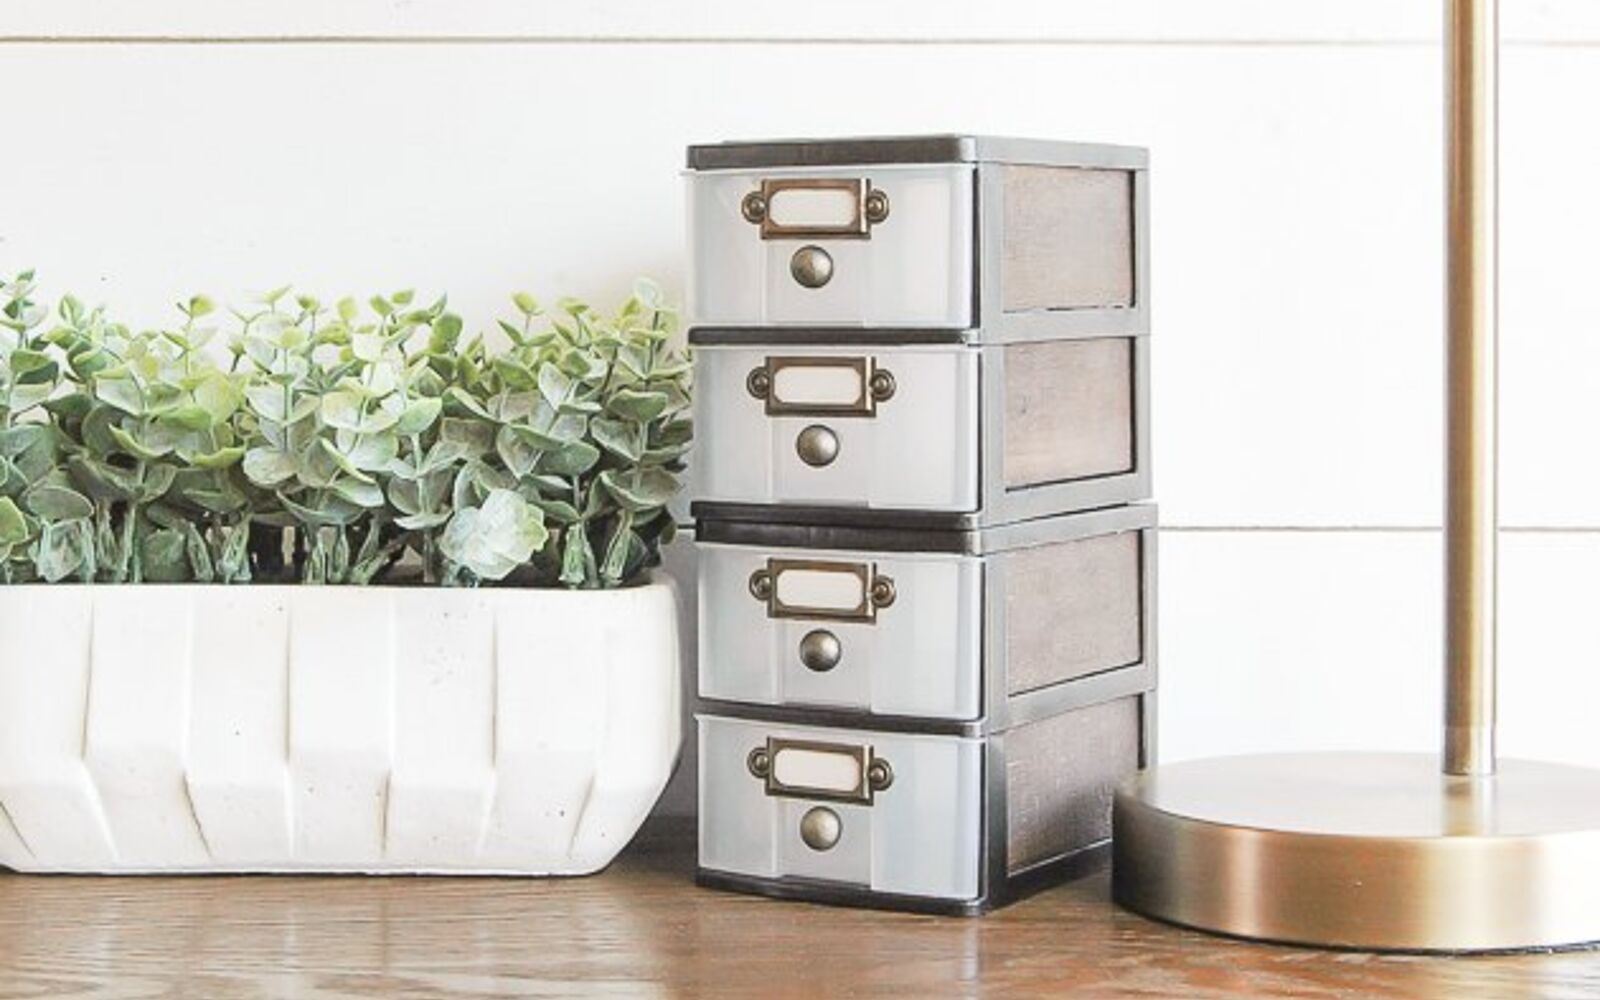 s 32 space saving storage ideas that ll keep your home organized, Turn plastic bins into farmhouse decor